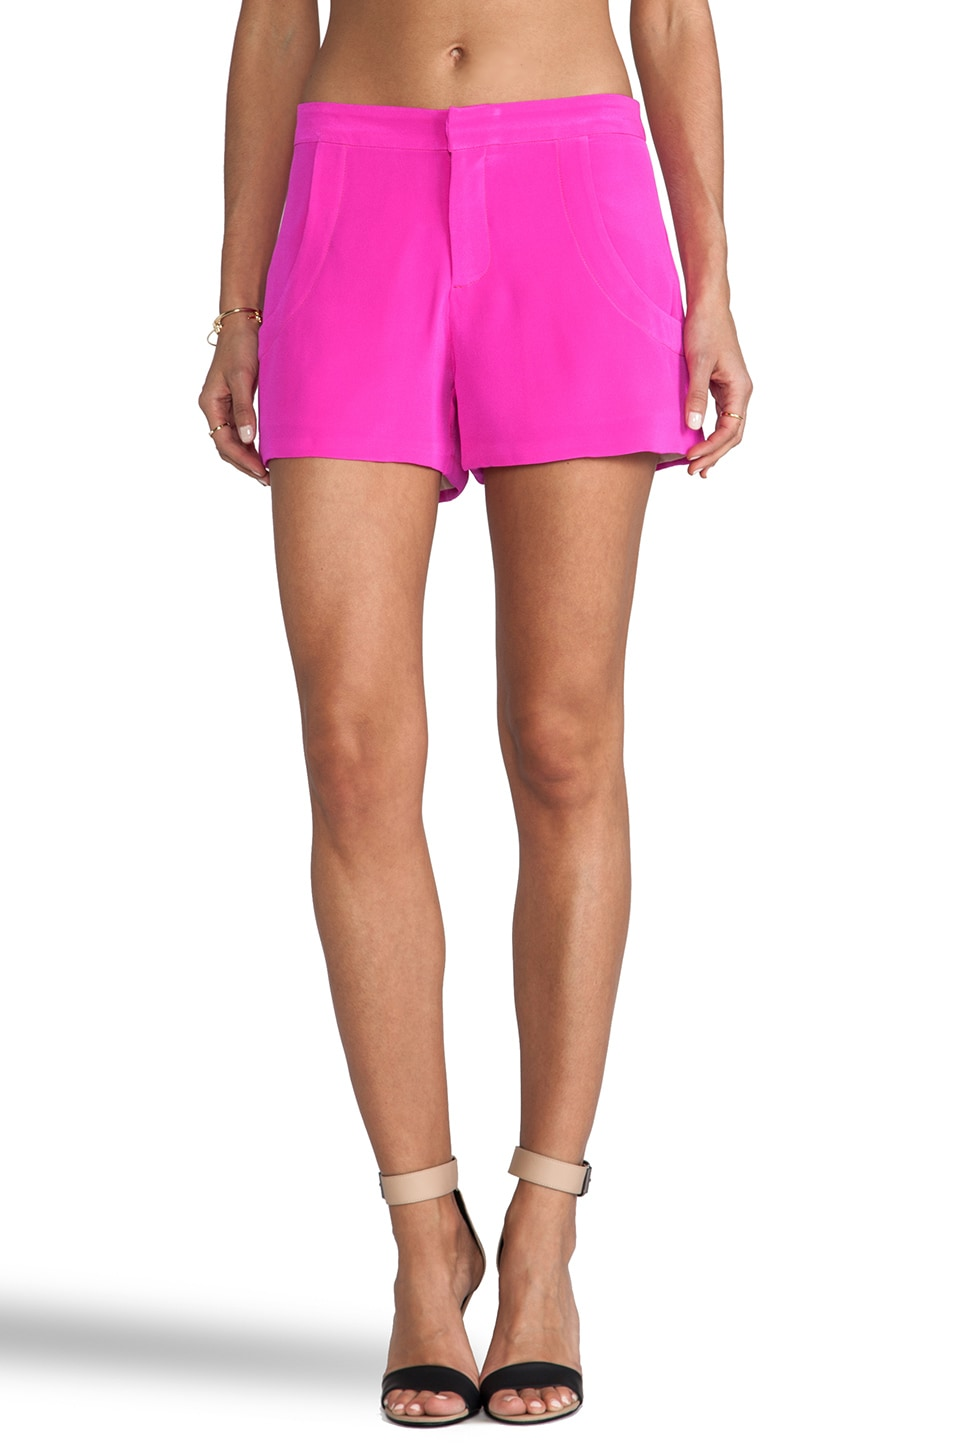 Naven Designer Tuxedo Shorts in Pop Pink